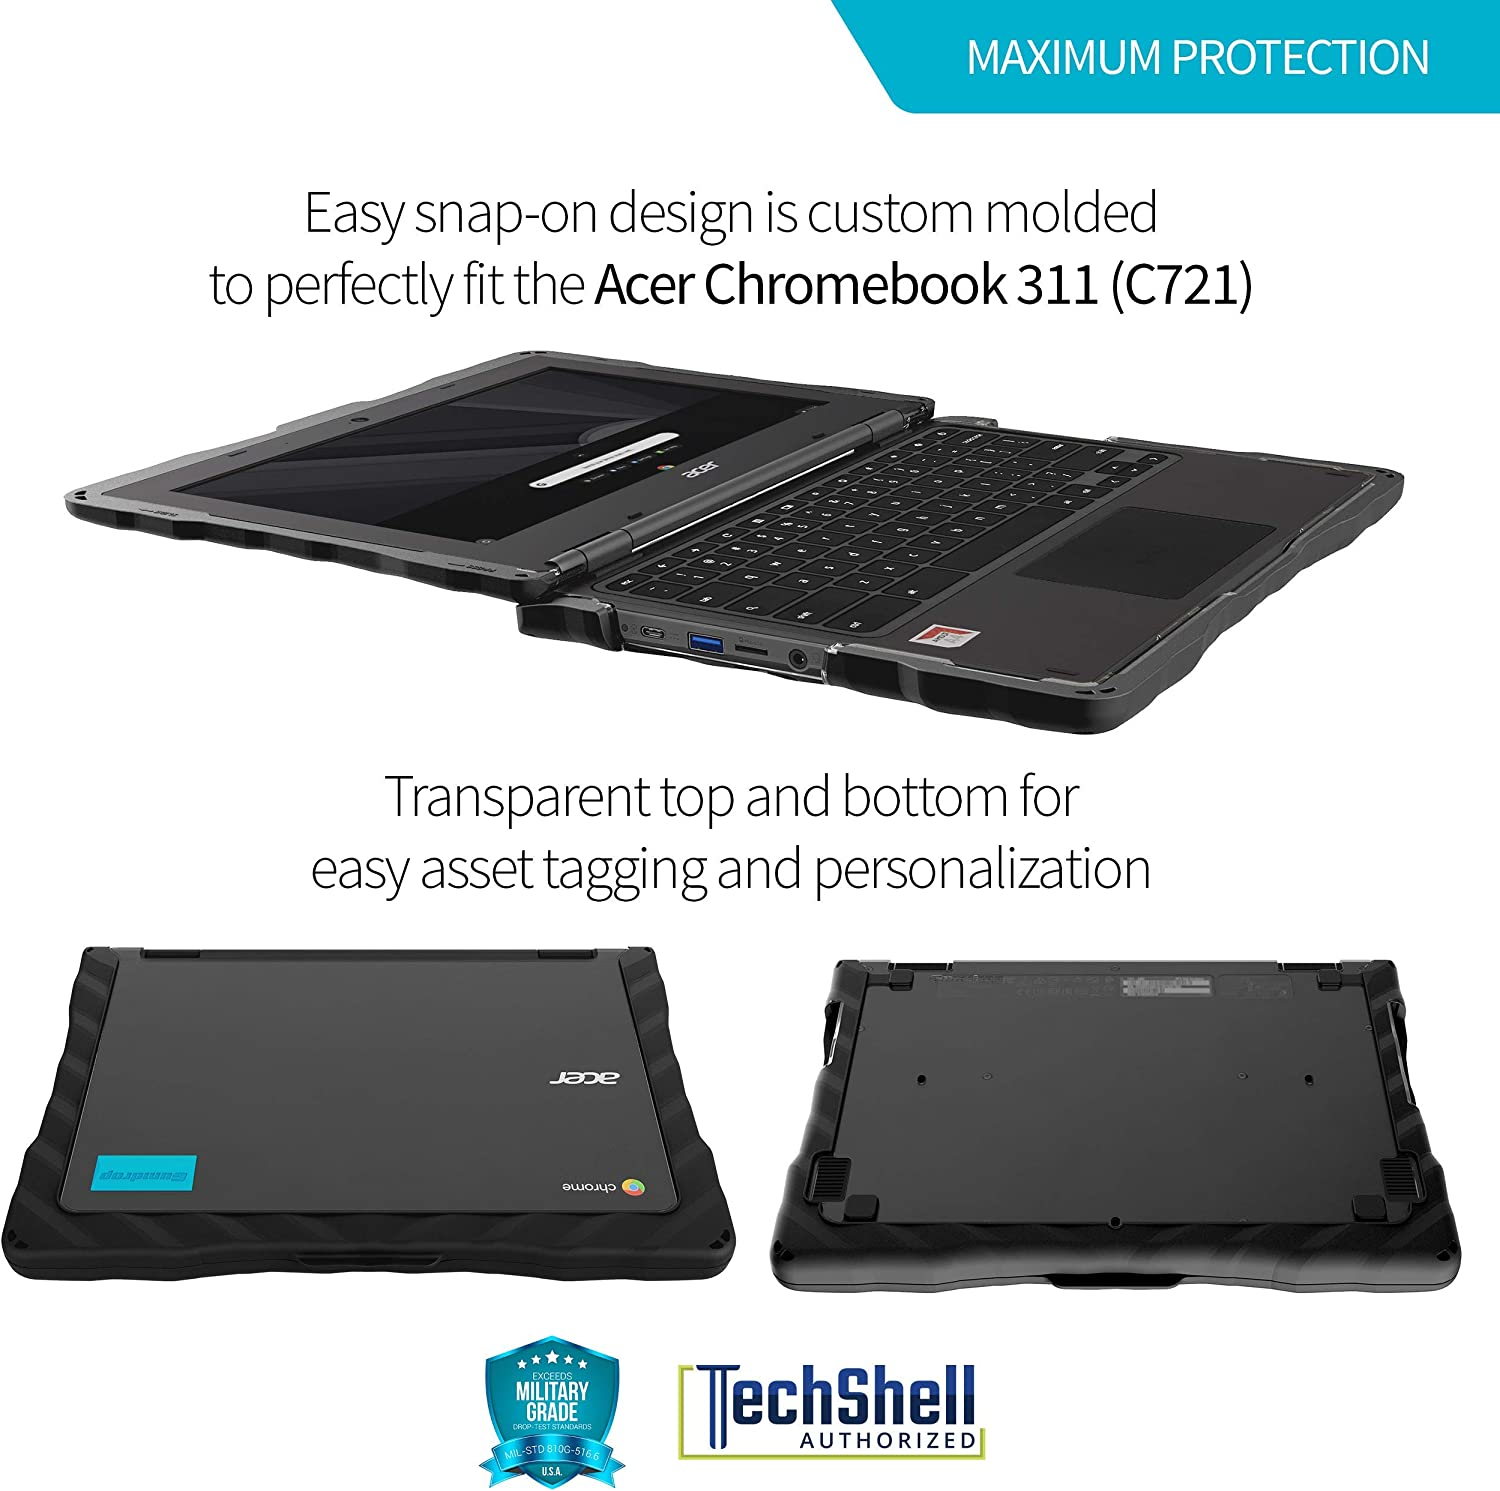 Chrome Laptop Shock Absorbing C721 School-Ready GumDrop DropTech Case Designed for Acer Chromebook 311 Extreme Drop Protection Cover Black Rugged Always-on